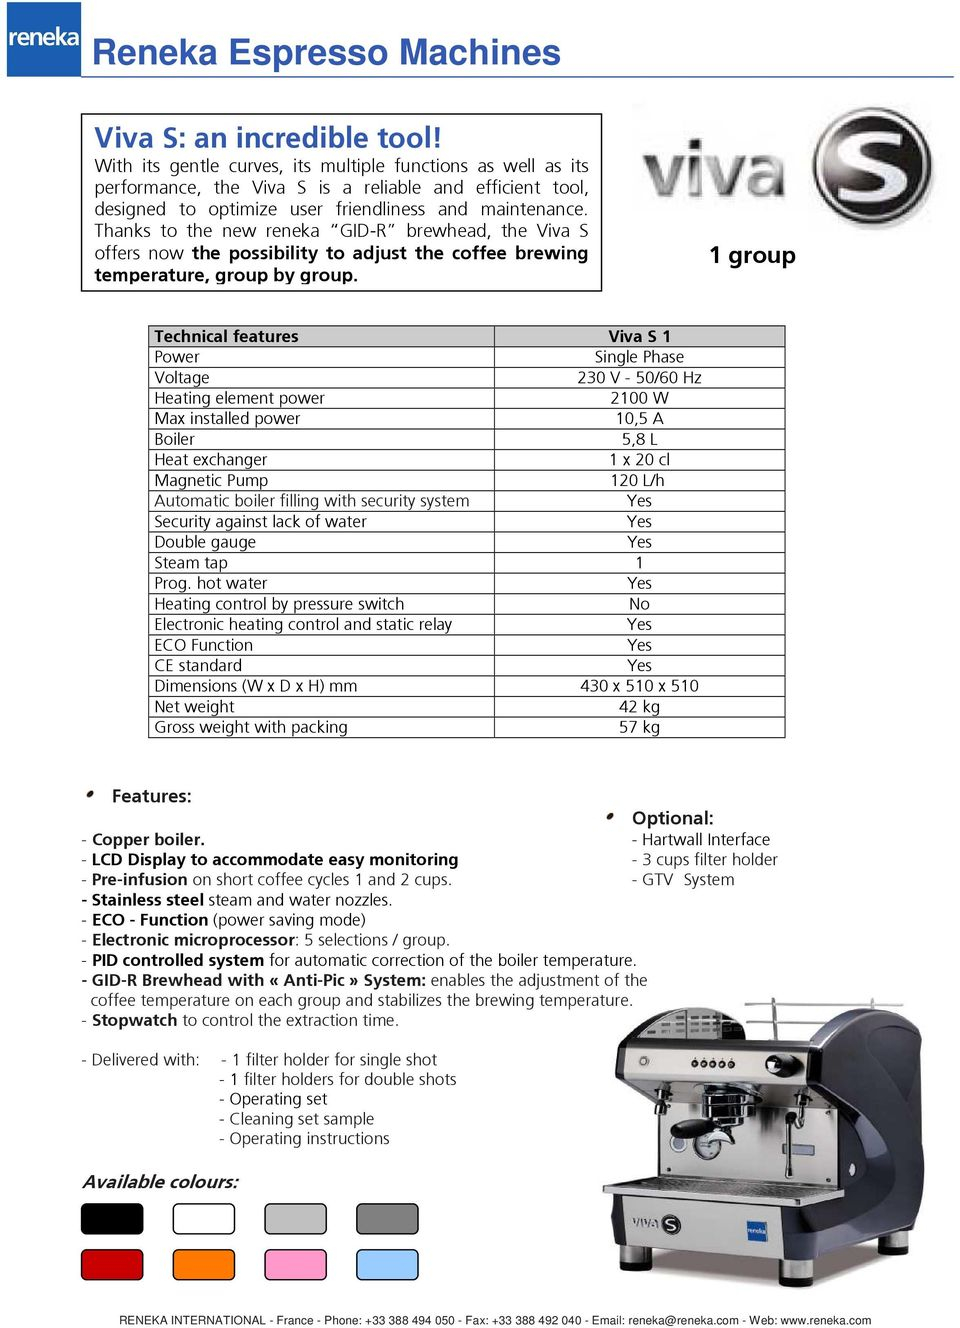 Reneka Espresso Machines 2009 Range Pdf How Do You Adjust The Pressure Switch On A Well Pump Thanks To New Gid R Brewhead Viva S Offers Now